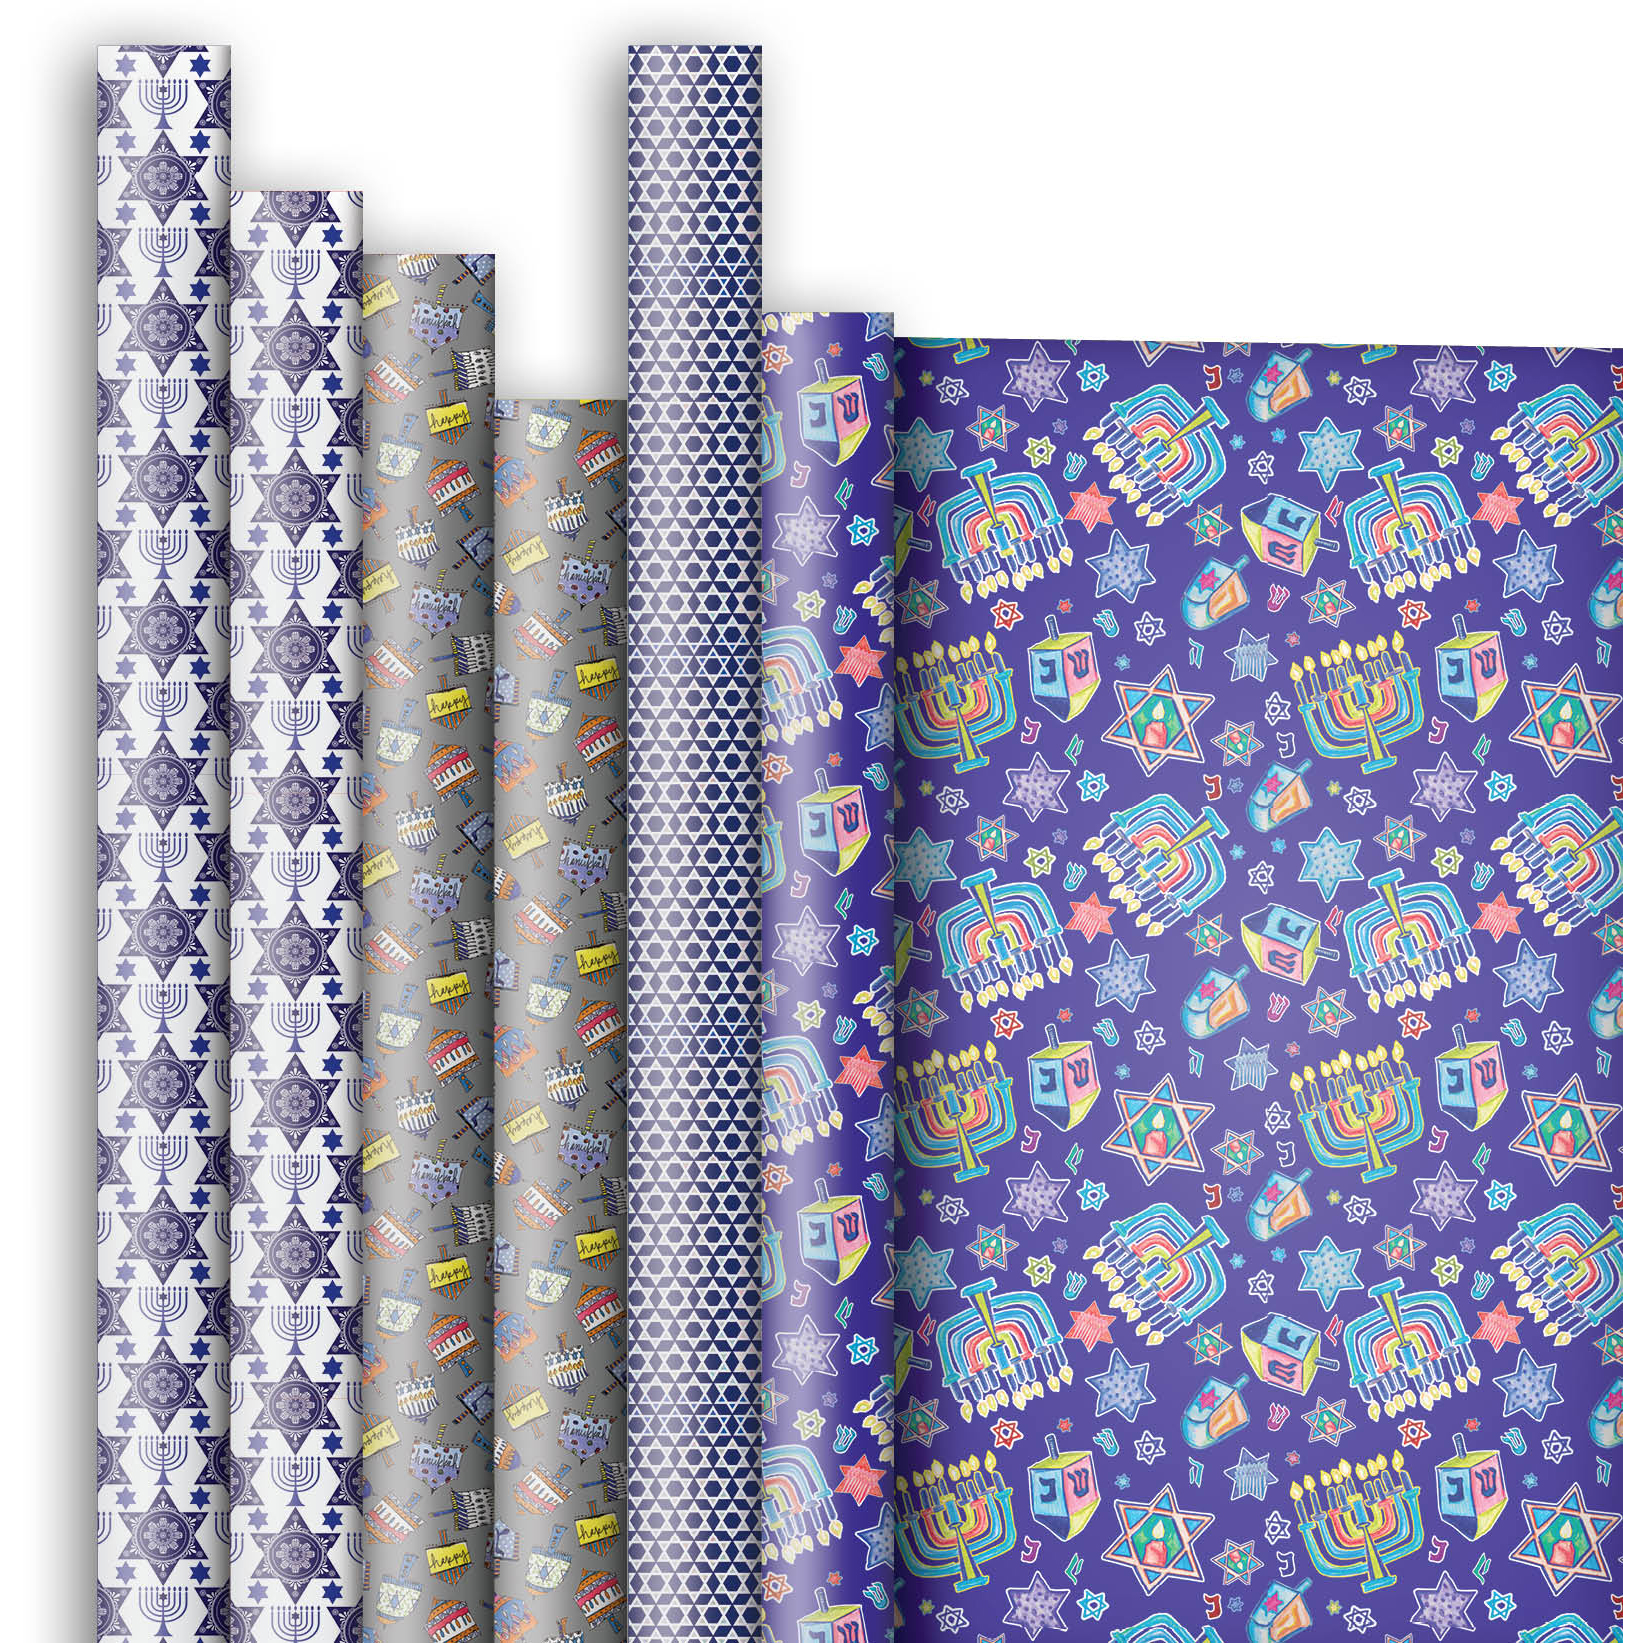 Jillson & Roberts Premium Gift Wrap Roll Assortment, Hanukkah Designs (6 Rolls)